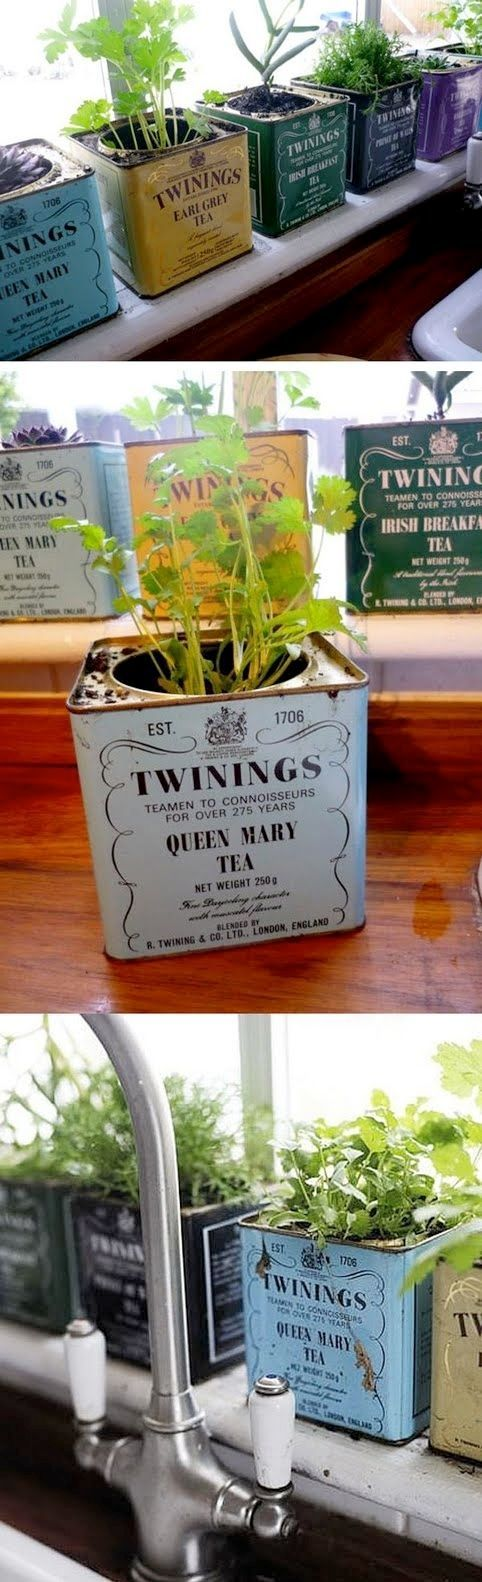 I AM GOING TO DRINK TWINNINGS TEA JUST SO I CAN USE THE CONTAINERS FOR HERBS...